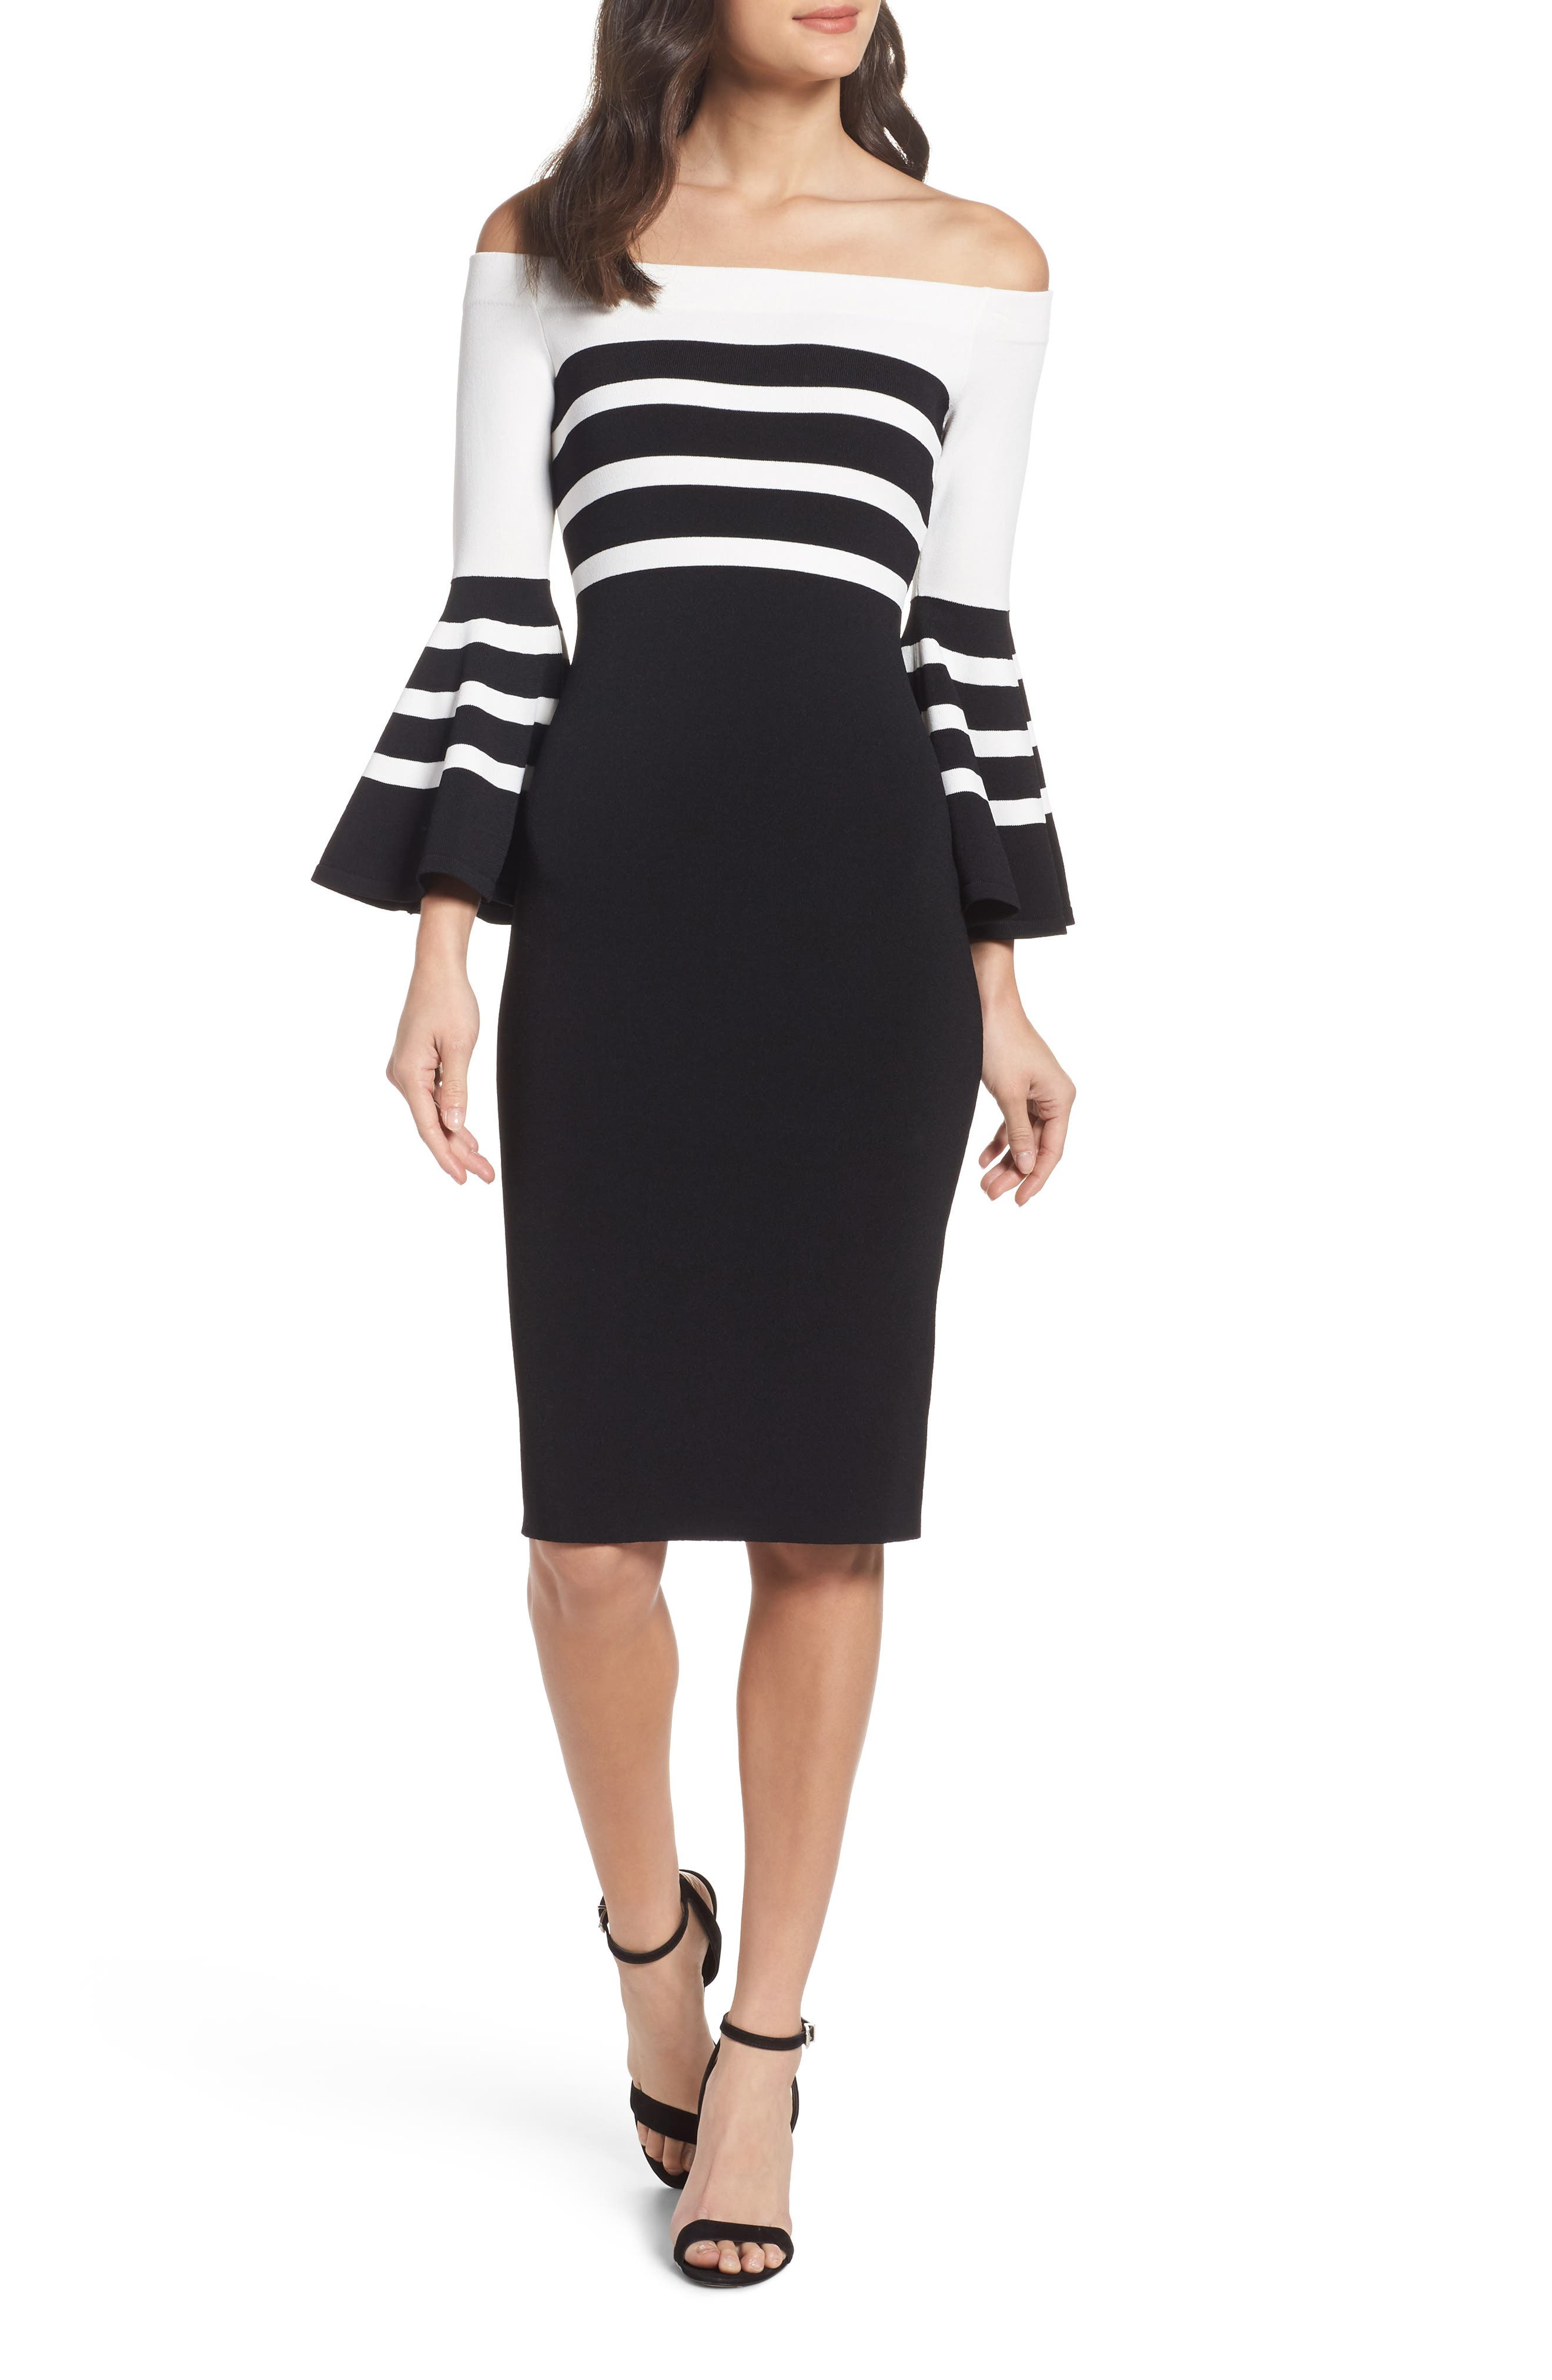 Off the Shoulder Sweater Dress,                             Main thumbnail 1, color,                             Black/ White Stripe